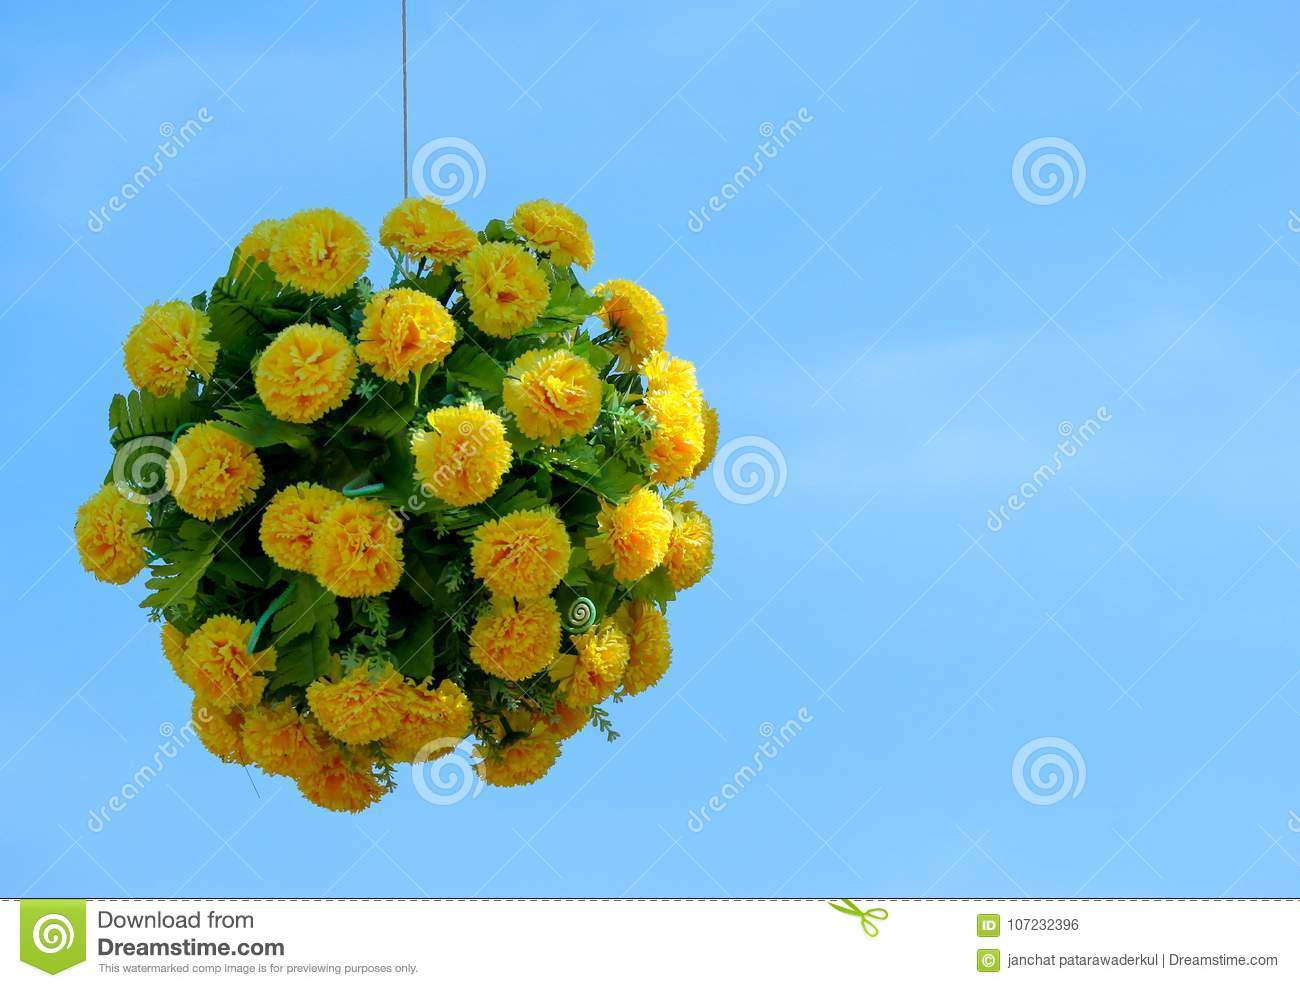 A Hanging Full Bloom Of Yellow Flower Bouquet In Sphere Shape With